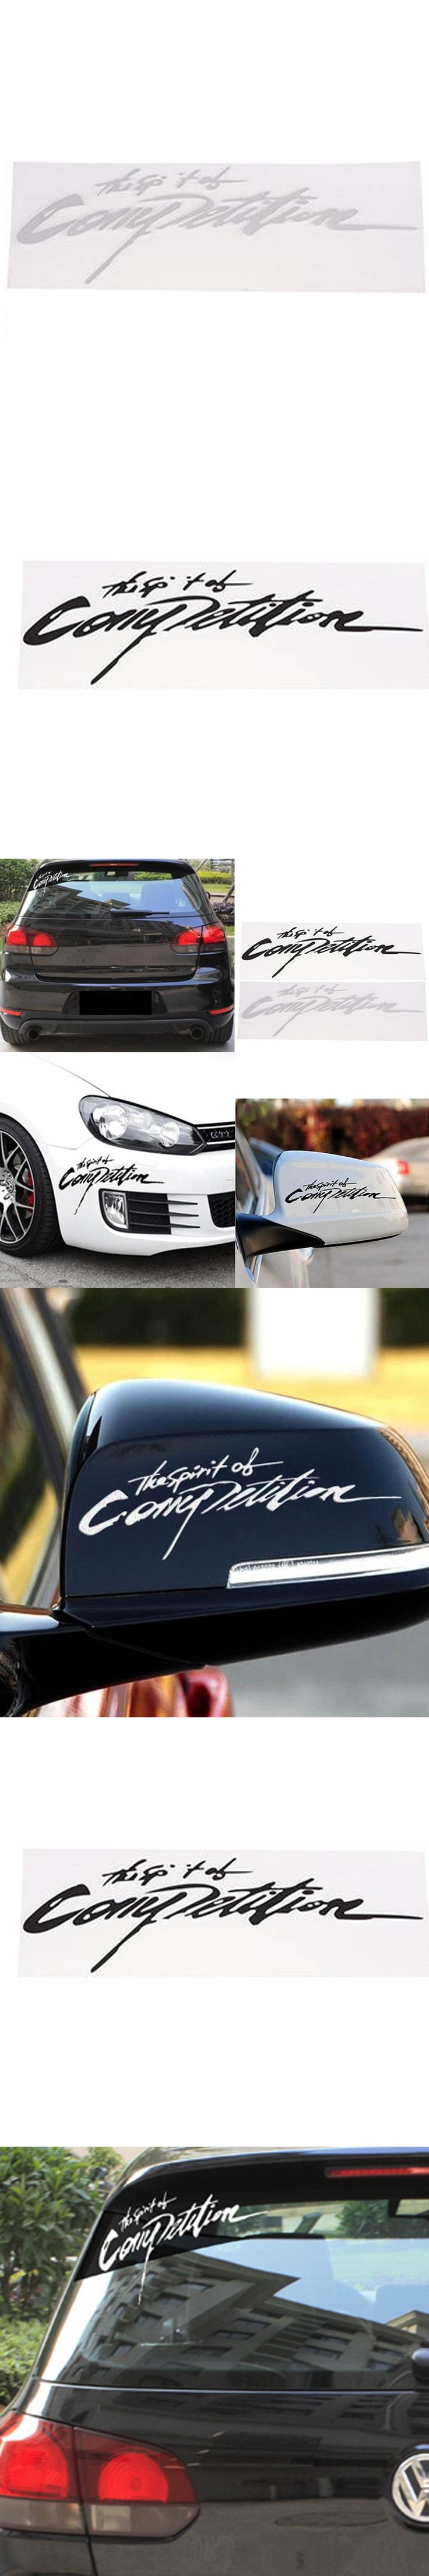 32*11CM Speed And Passion Beauty Fashion Creative Car Body Stickers Personalized Reflective Body Stickers